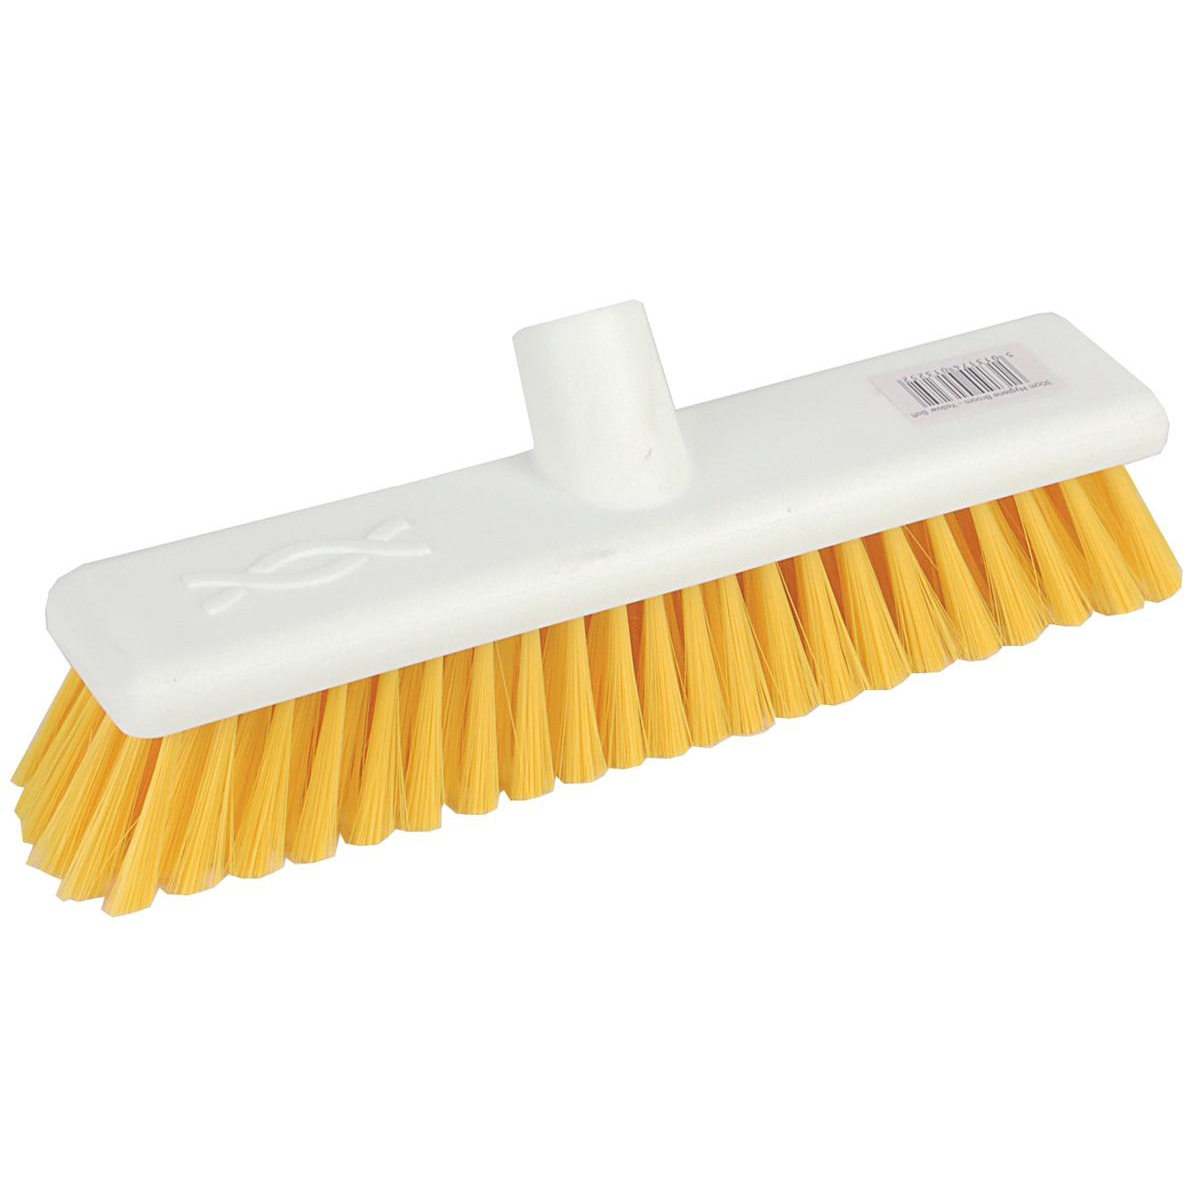 Brushes & Brooms Robert Scott & Sons Abbey Hygiene Broom 12inch Washable Soft Broom Head Yellow Ref BHYRS12SY